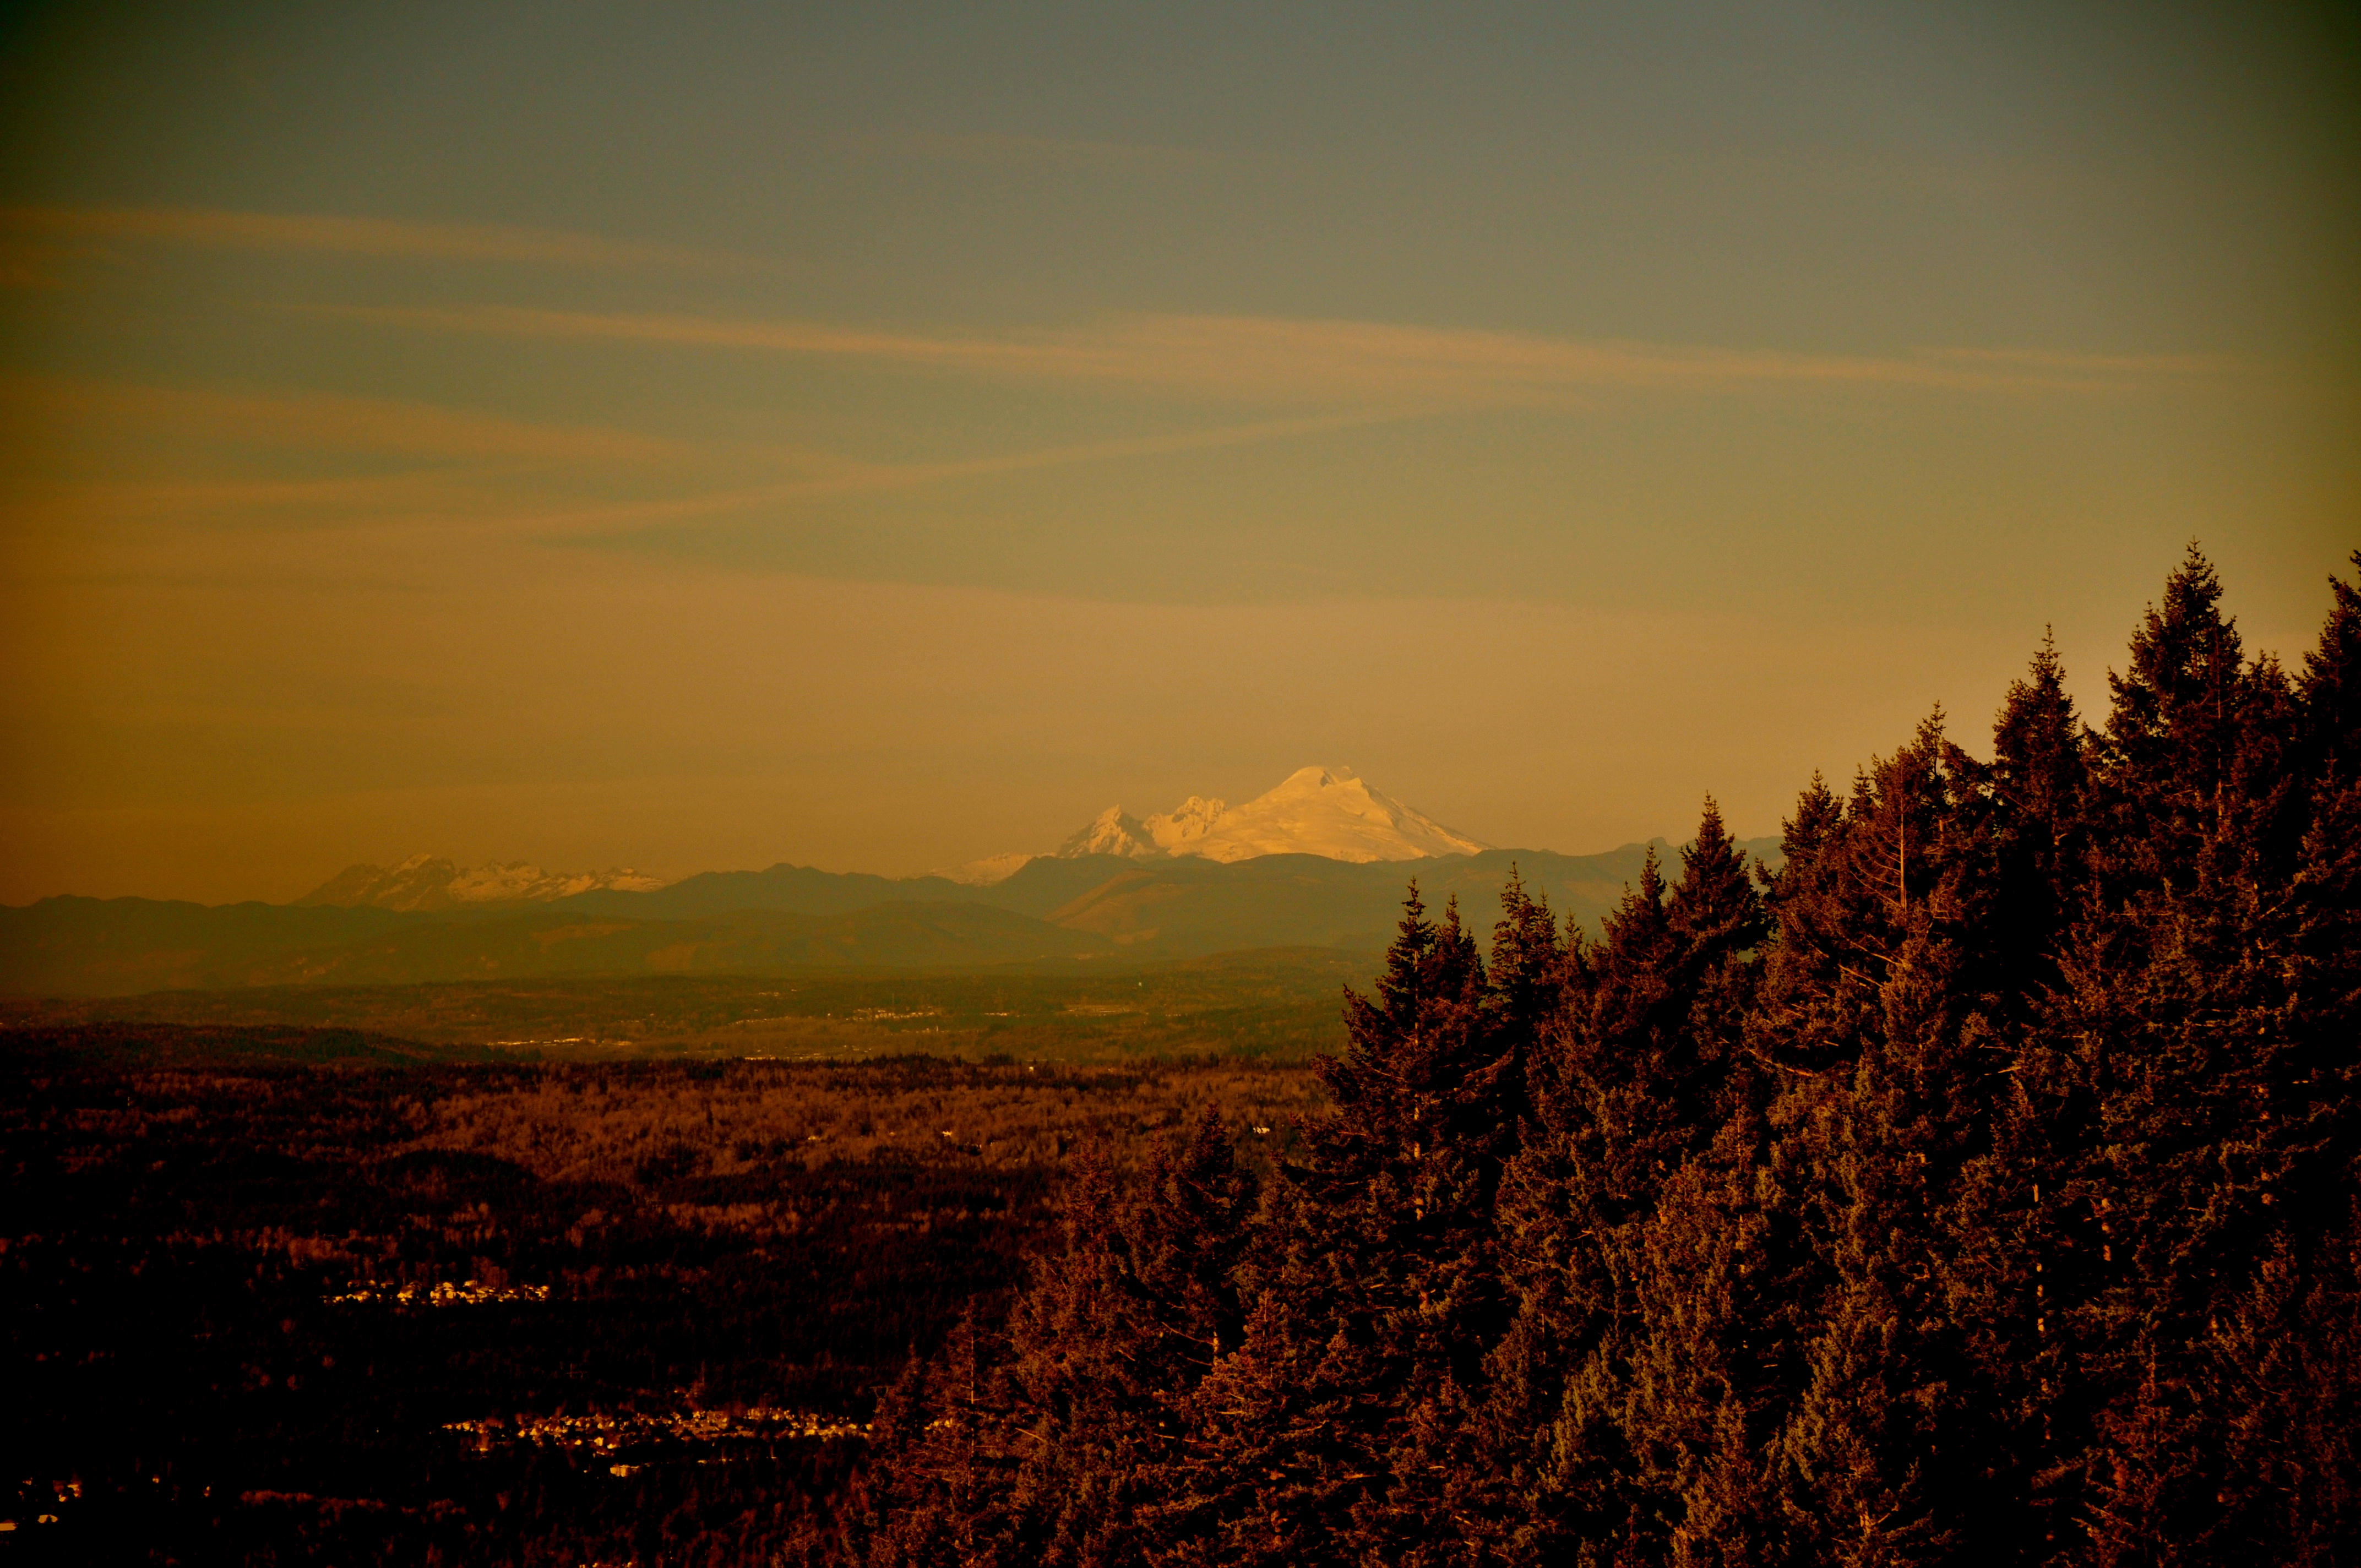 Mt. Baker in the far north. The Native Americans request Kulshan be restored as this mountain's rightful name.